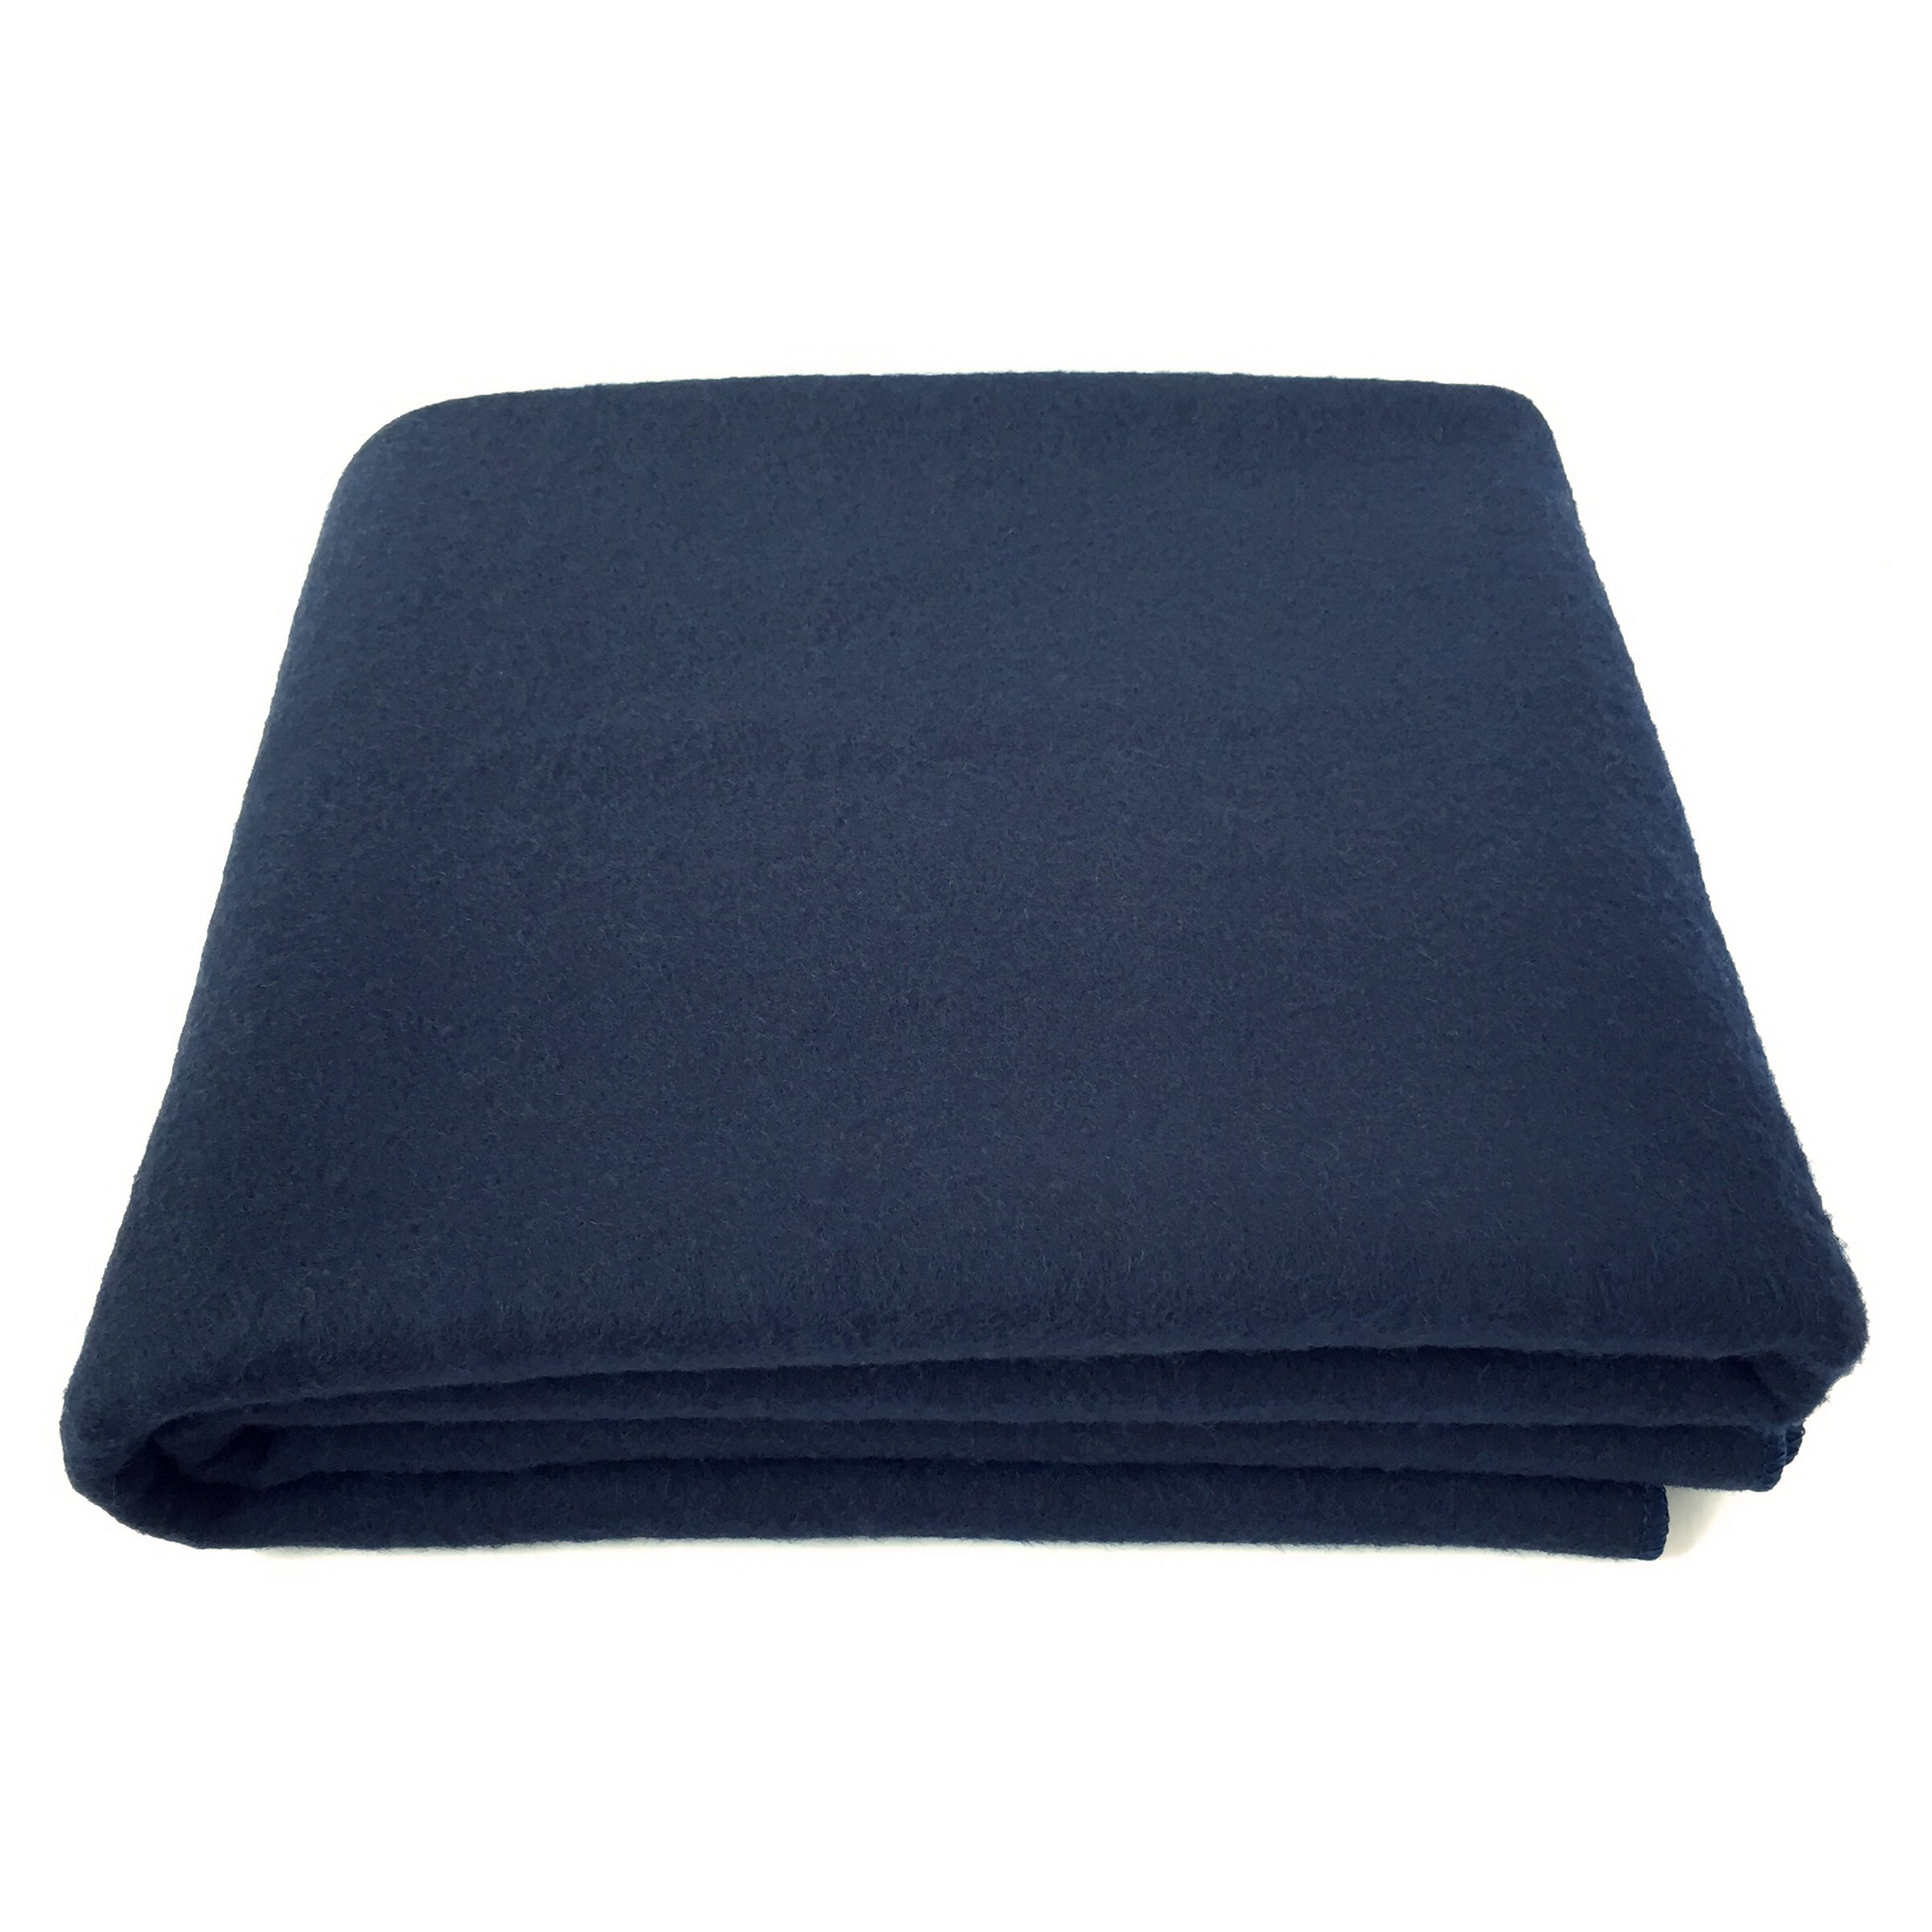 EKTOS 100% Wool Blanket, Navy Blue, Warm & Heavy 5.5 lbs, Large Washable 66''x90'' Size, Perfect for Outdoor Camping, Survival & Emergency Preparedness Use by EKTOS (Image #1)